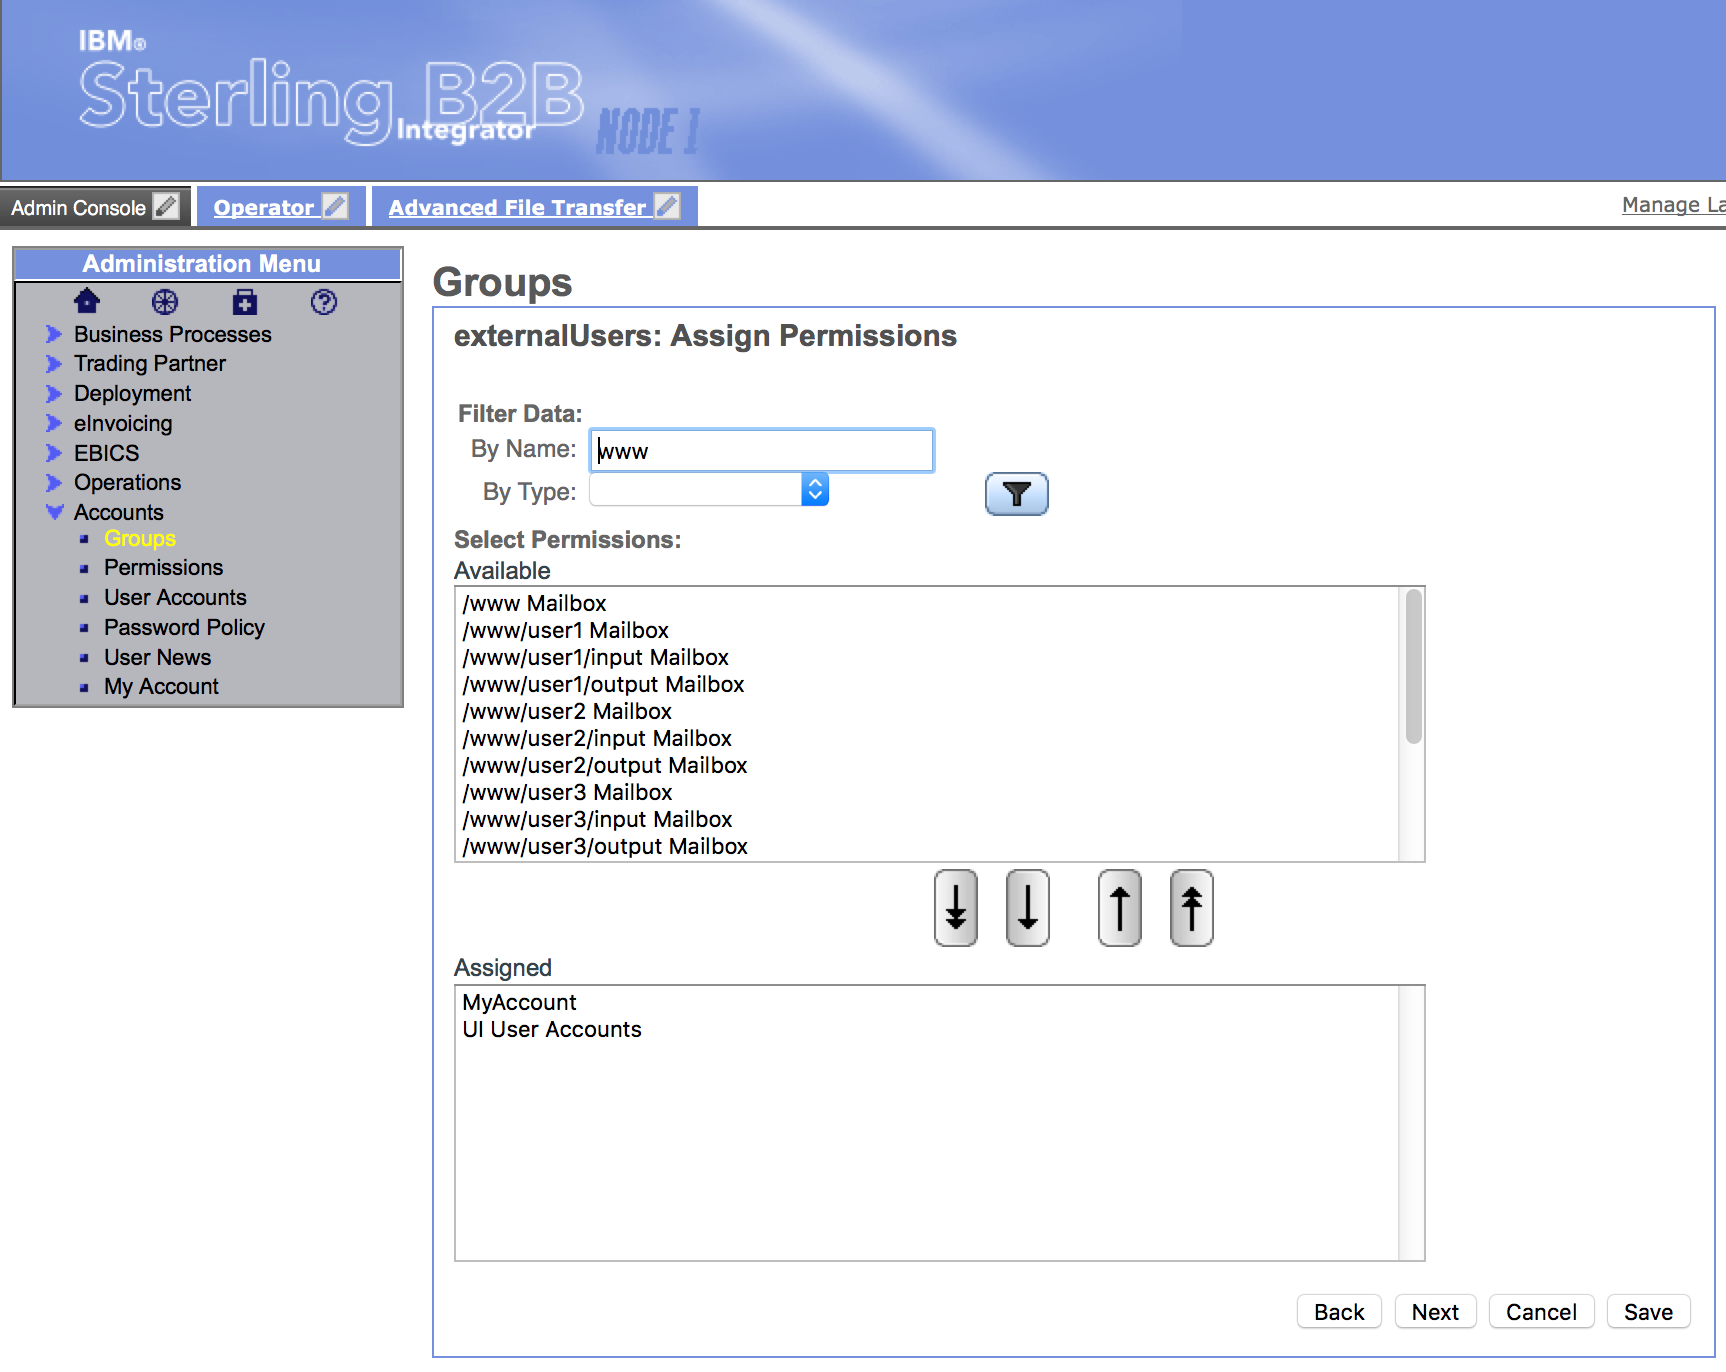 Groups - Assign Permissions